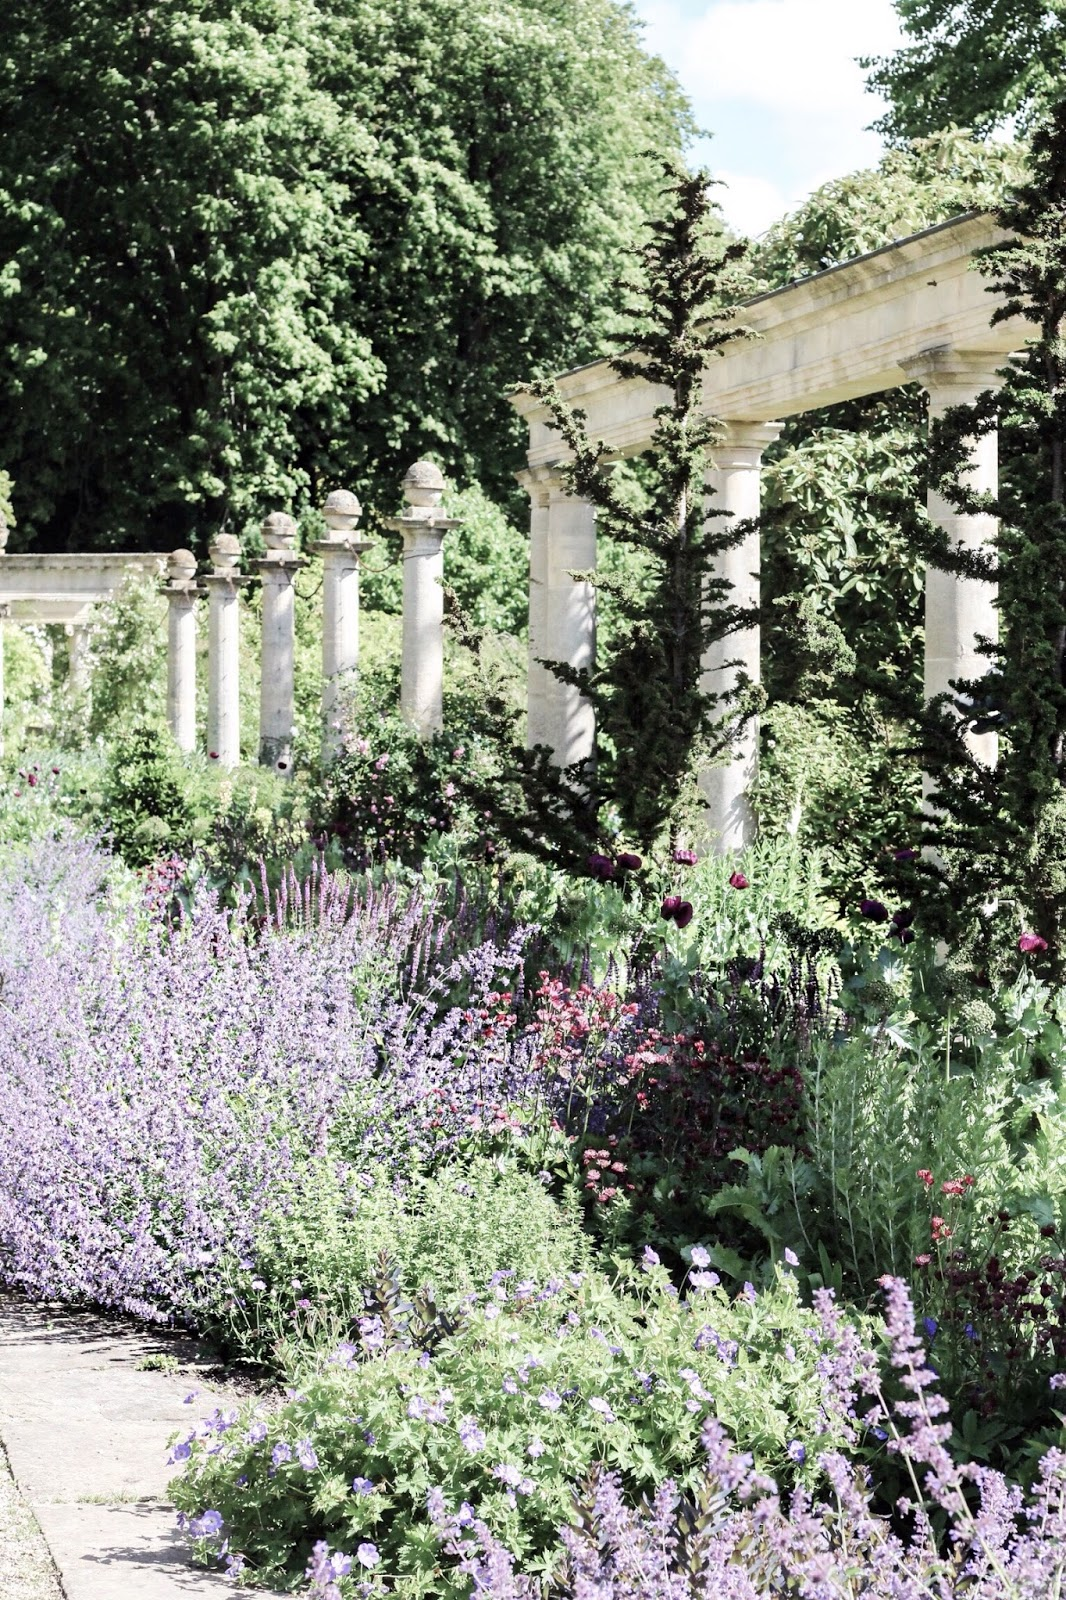 Iford manor gardens in the summertime